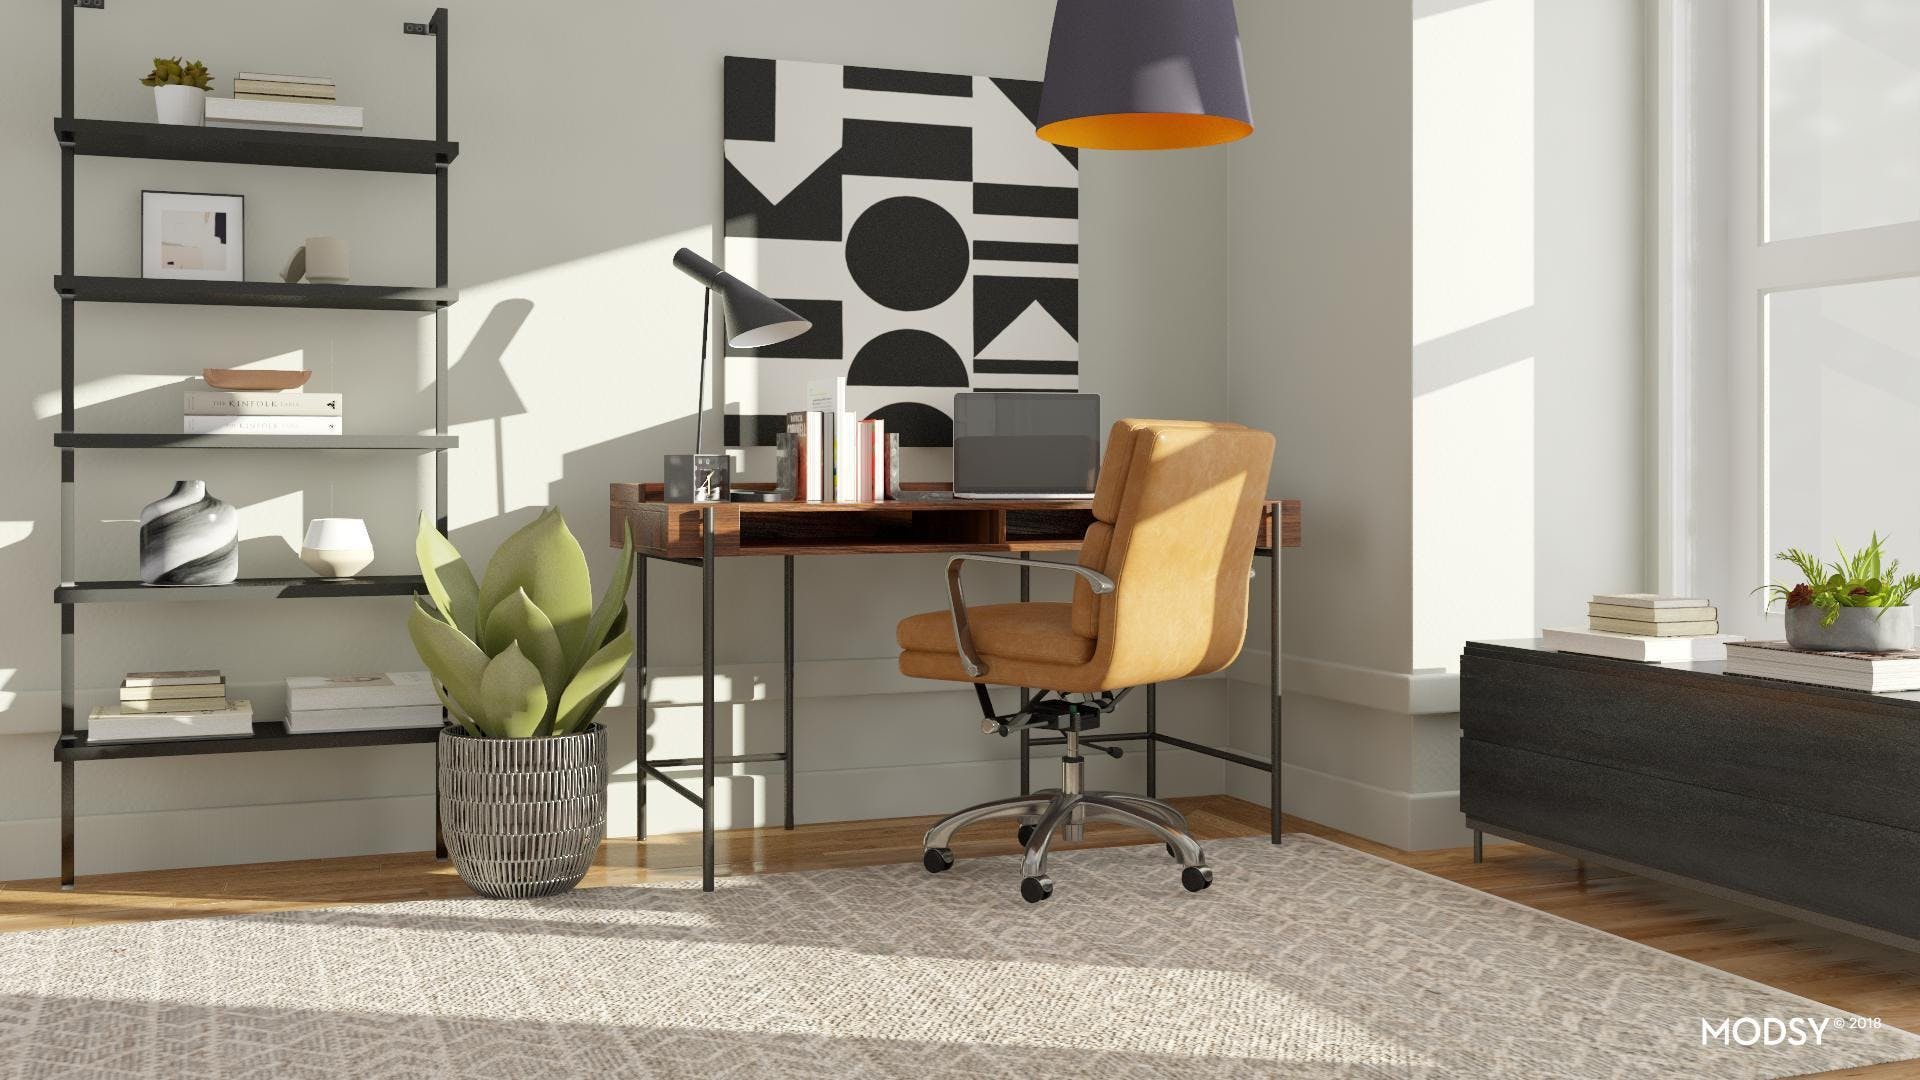 Making A High-Contrast Palette Work For An Office